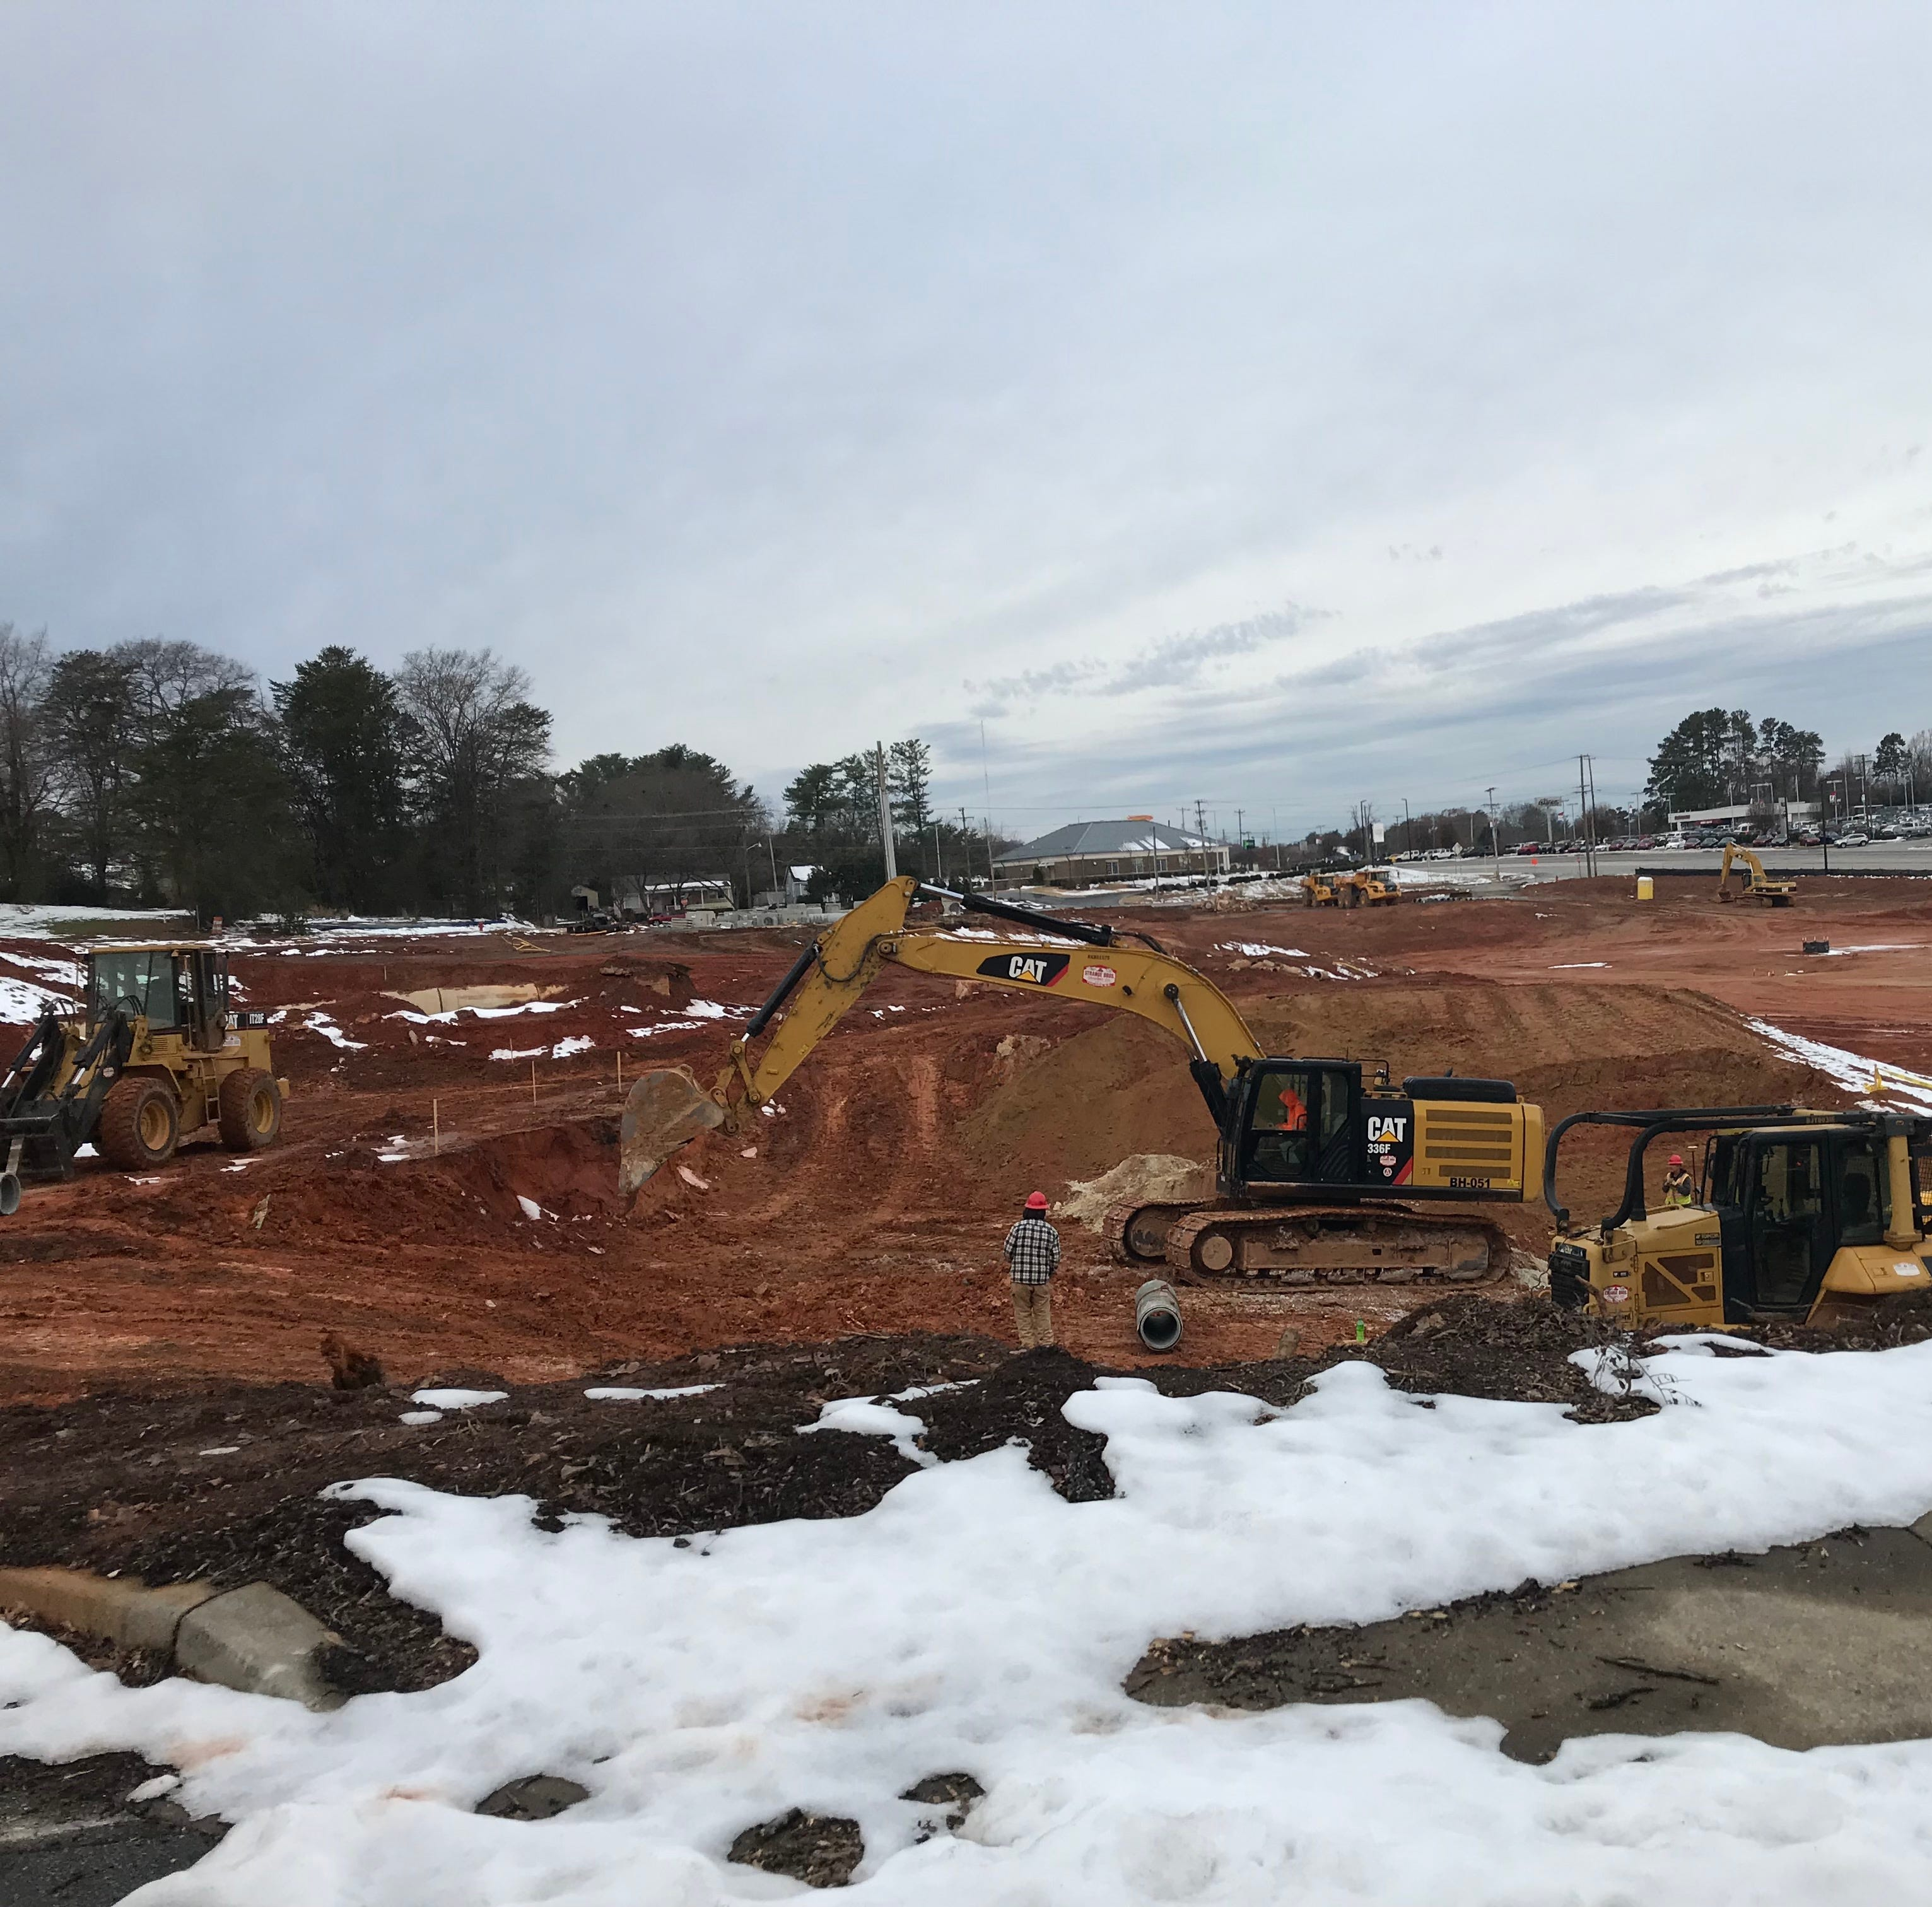 Ask LaFleur: What's being built at former site of Allen Bennett Hospital in Greer?